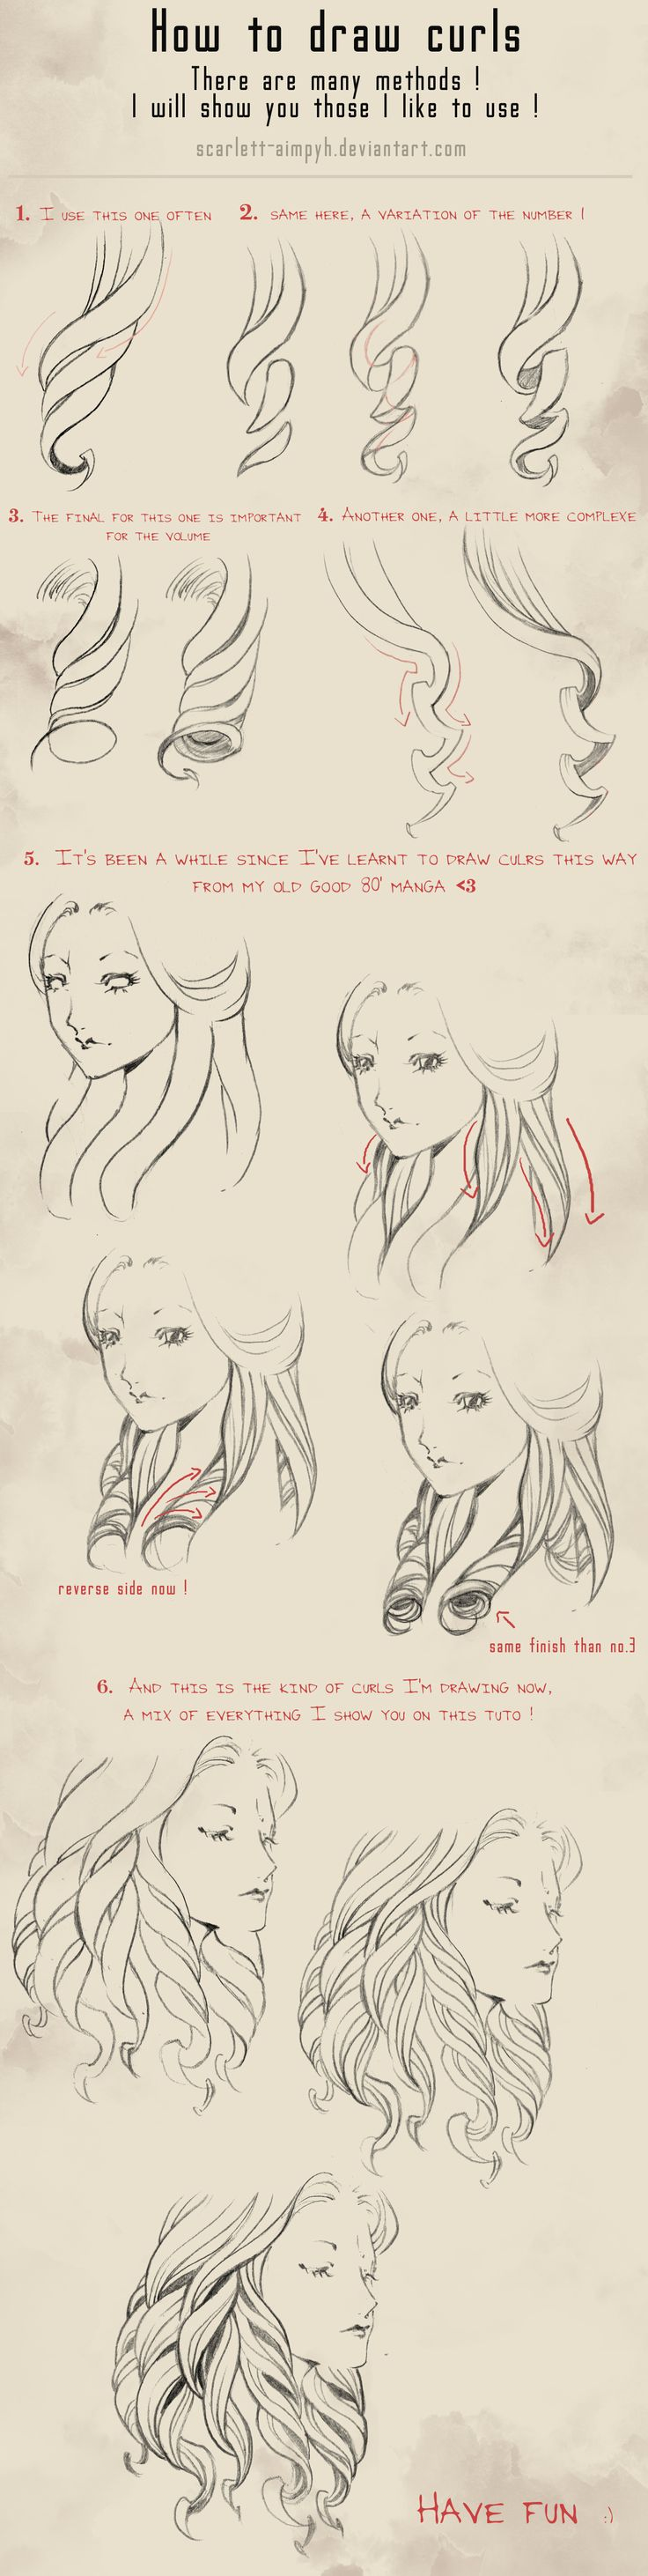 Anime Female Hair Tutorial More Artworks And Tutorials: https://www.facebook.com/lapukacom  This artwork does not belong to me! I post it because I find if fascinating. Some of my original art can be found at http://lapuka.com